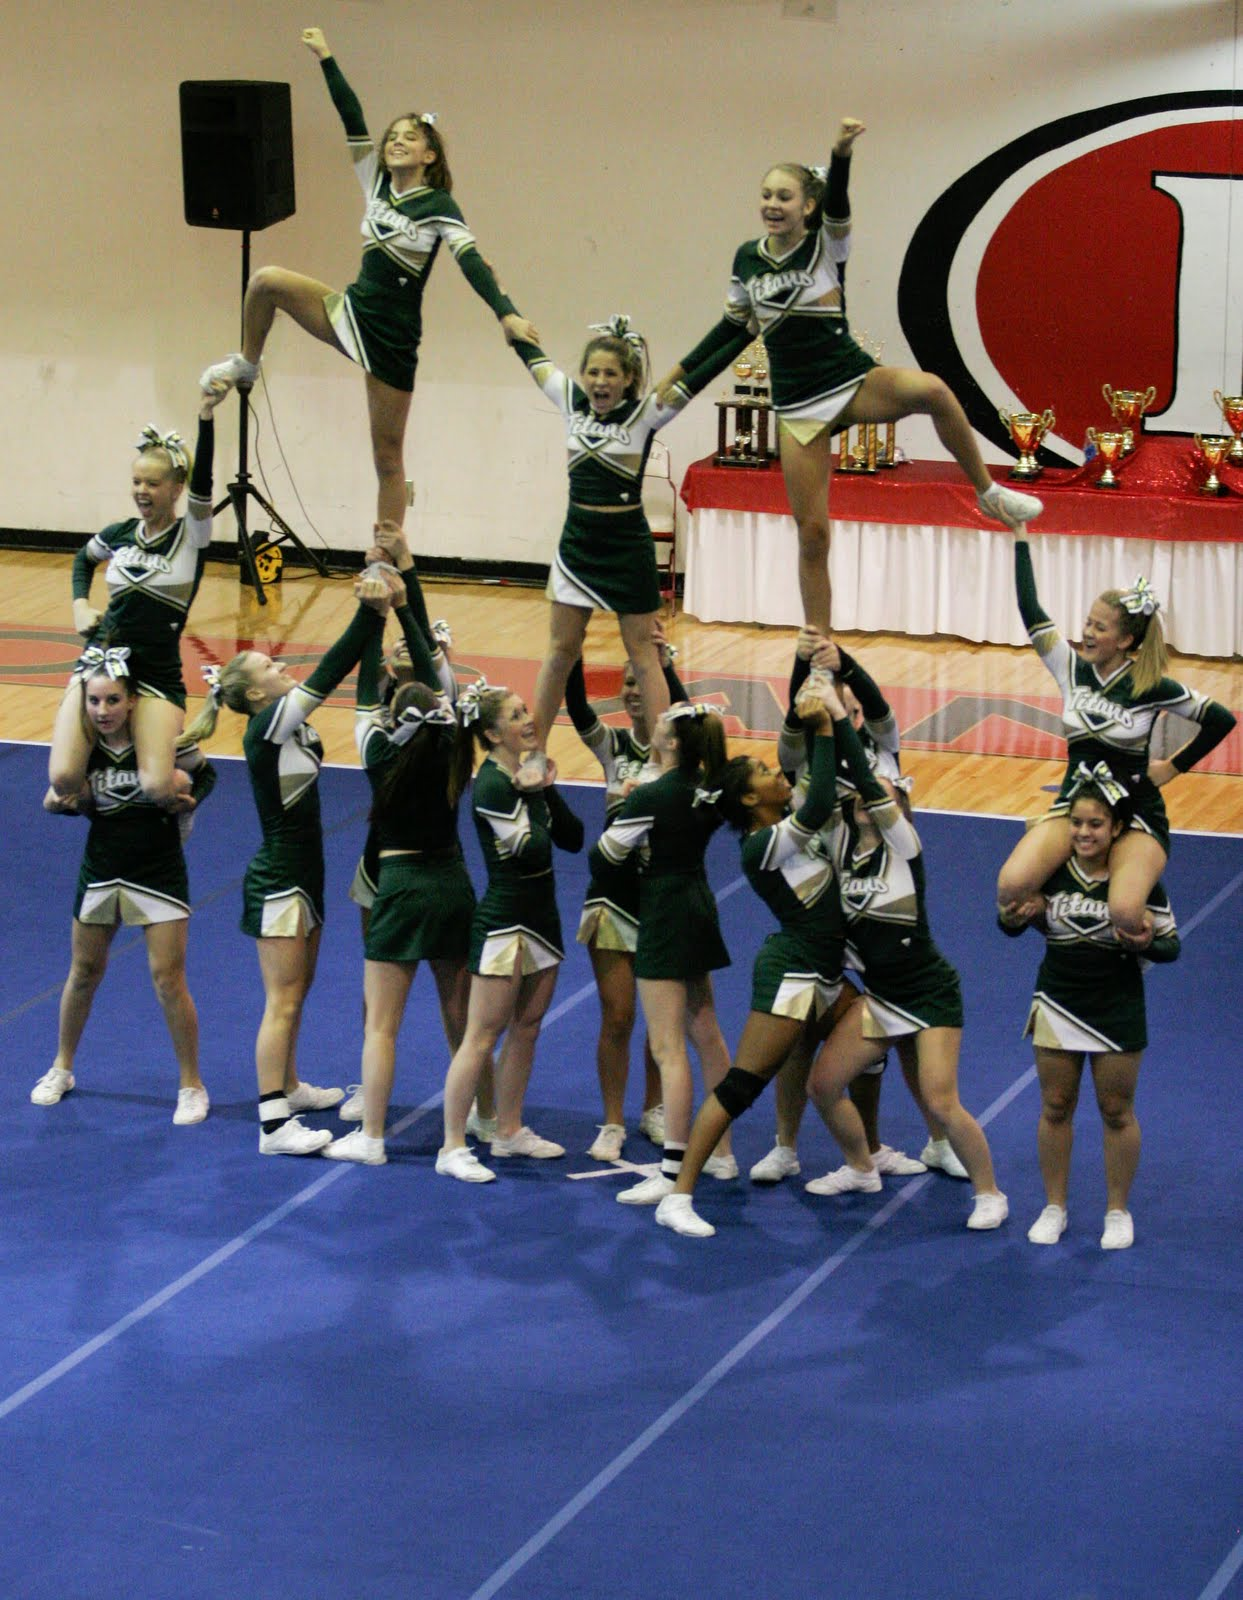 A Competition Cheerleading Convert Published August 26 2010